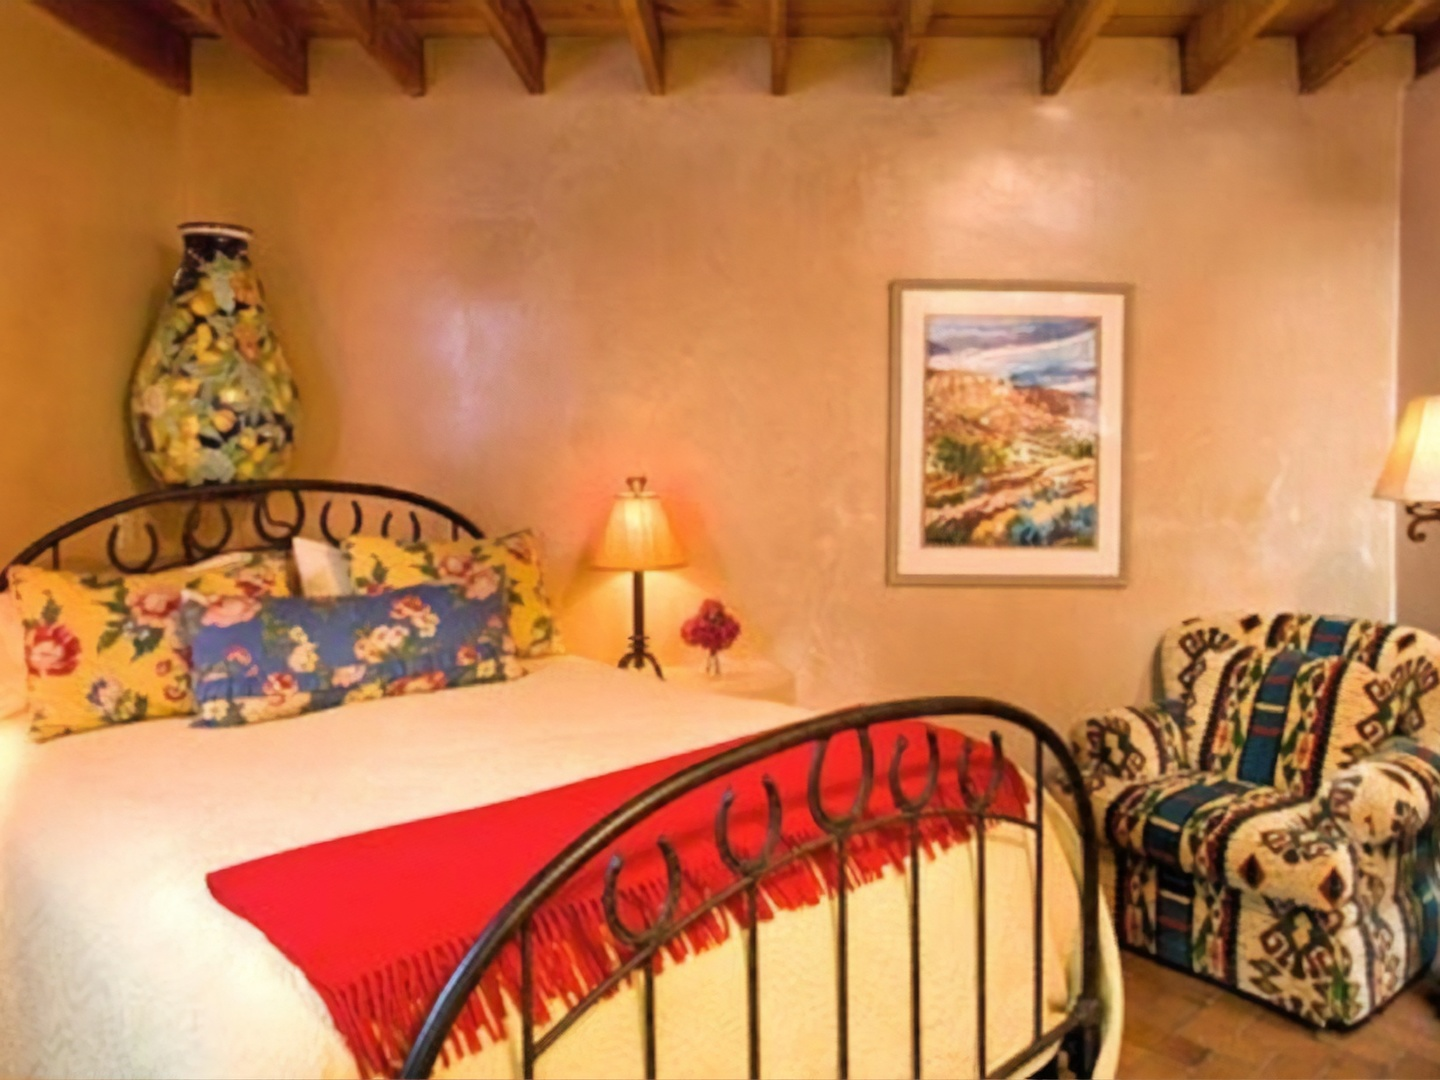 A bedroom with a bed and a painting on the wall at El Farolito Bed & Breakfast.